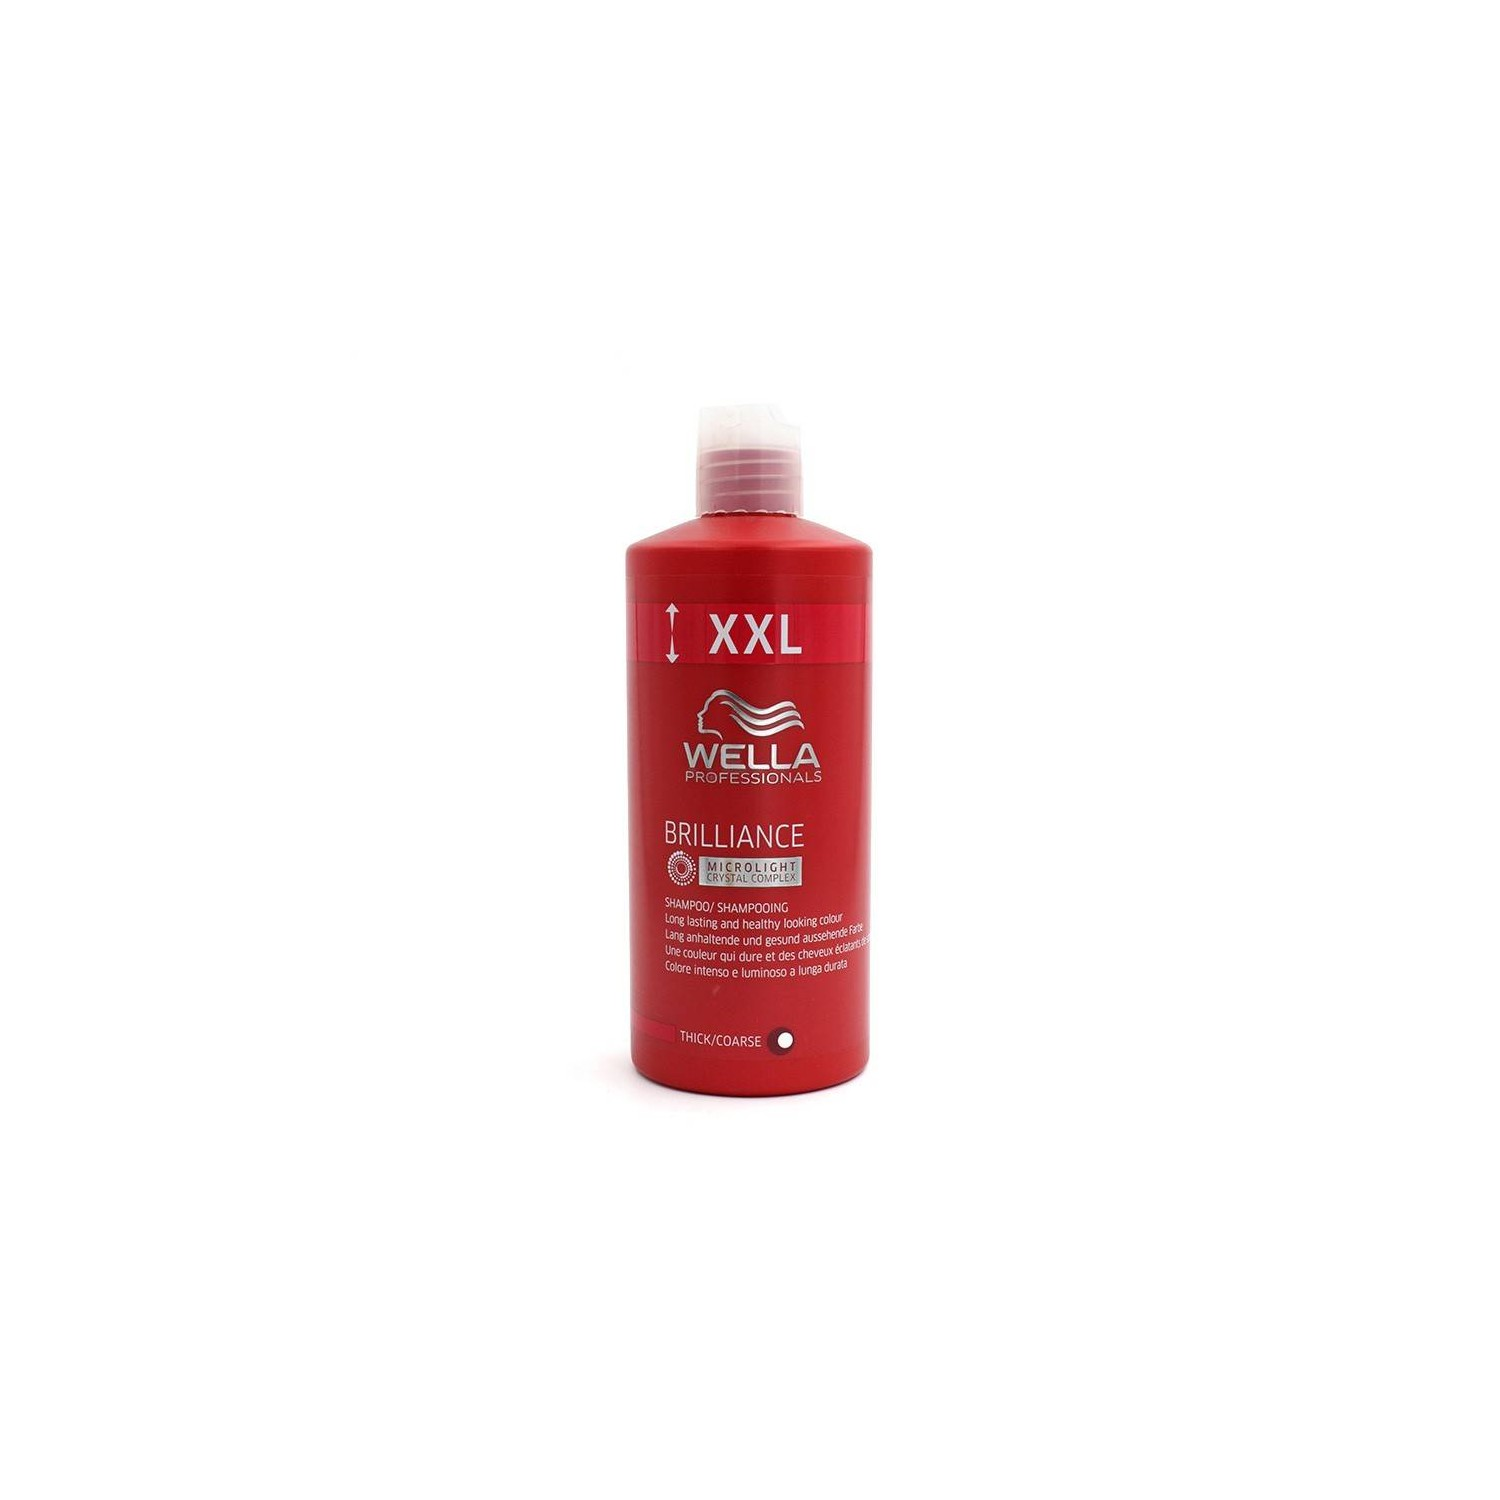 Wella Brilliance Champú Cabello Normal/fino 1000 Ml